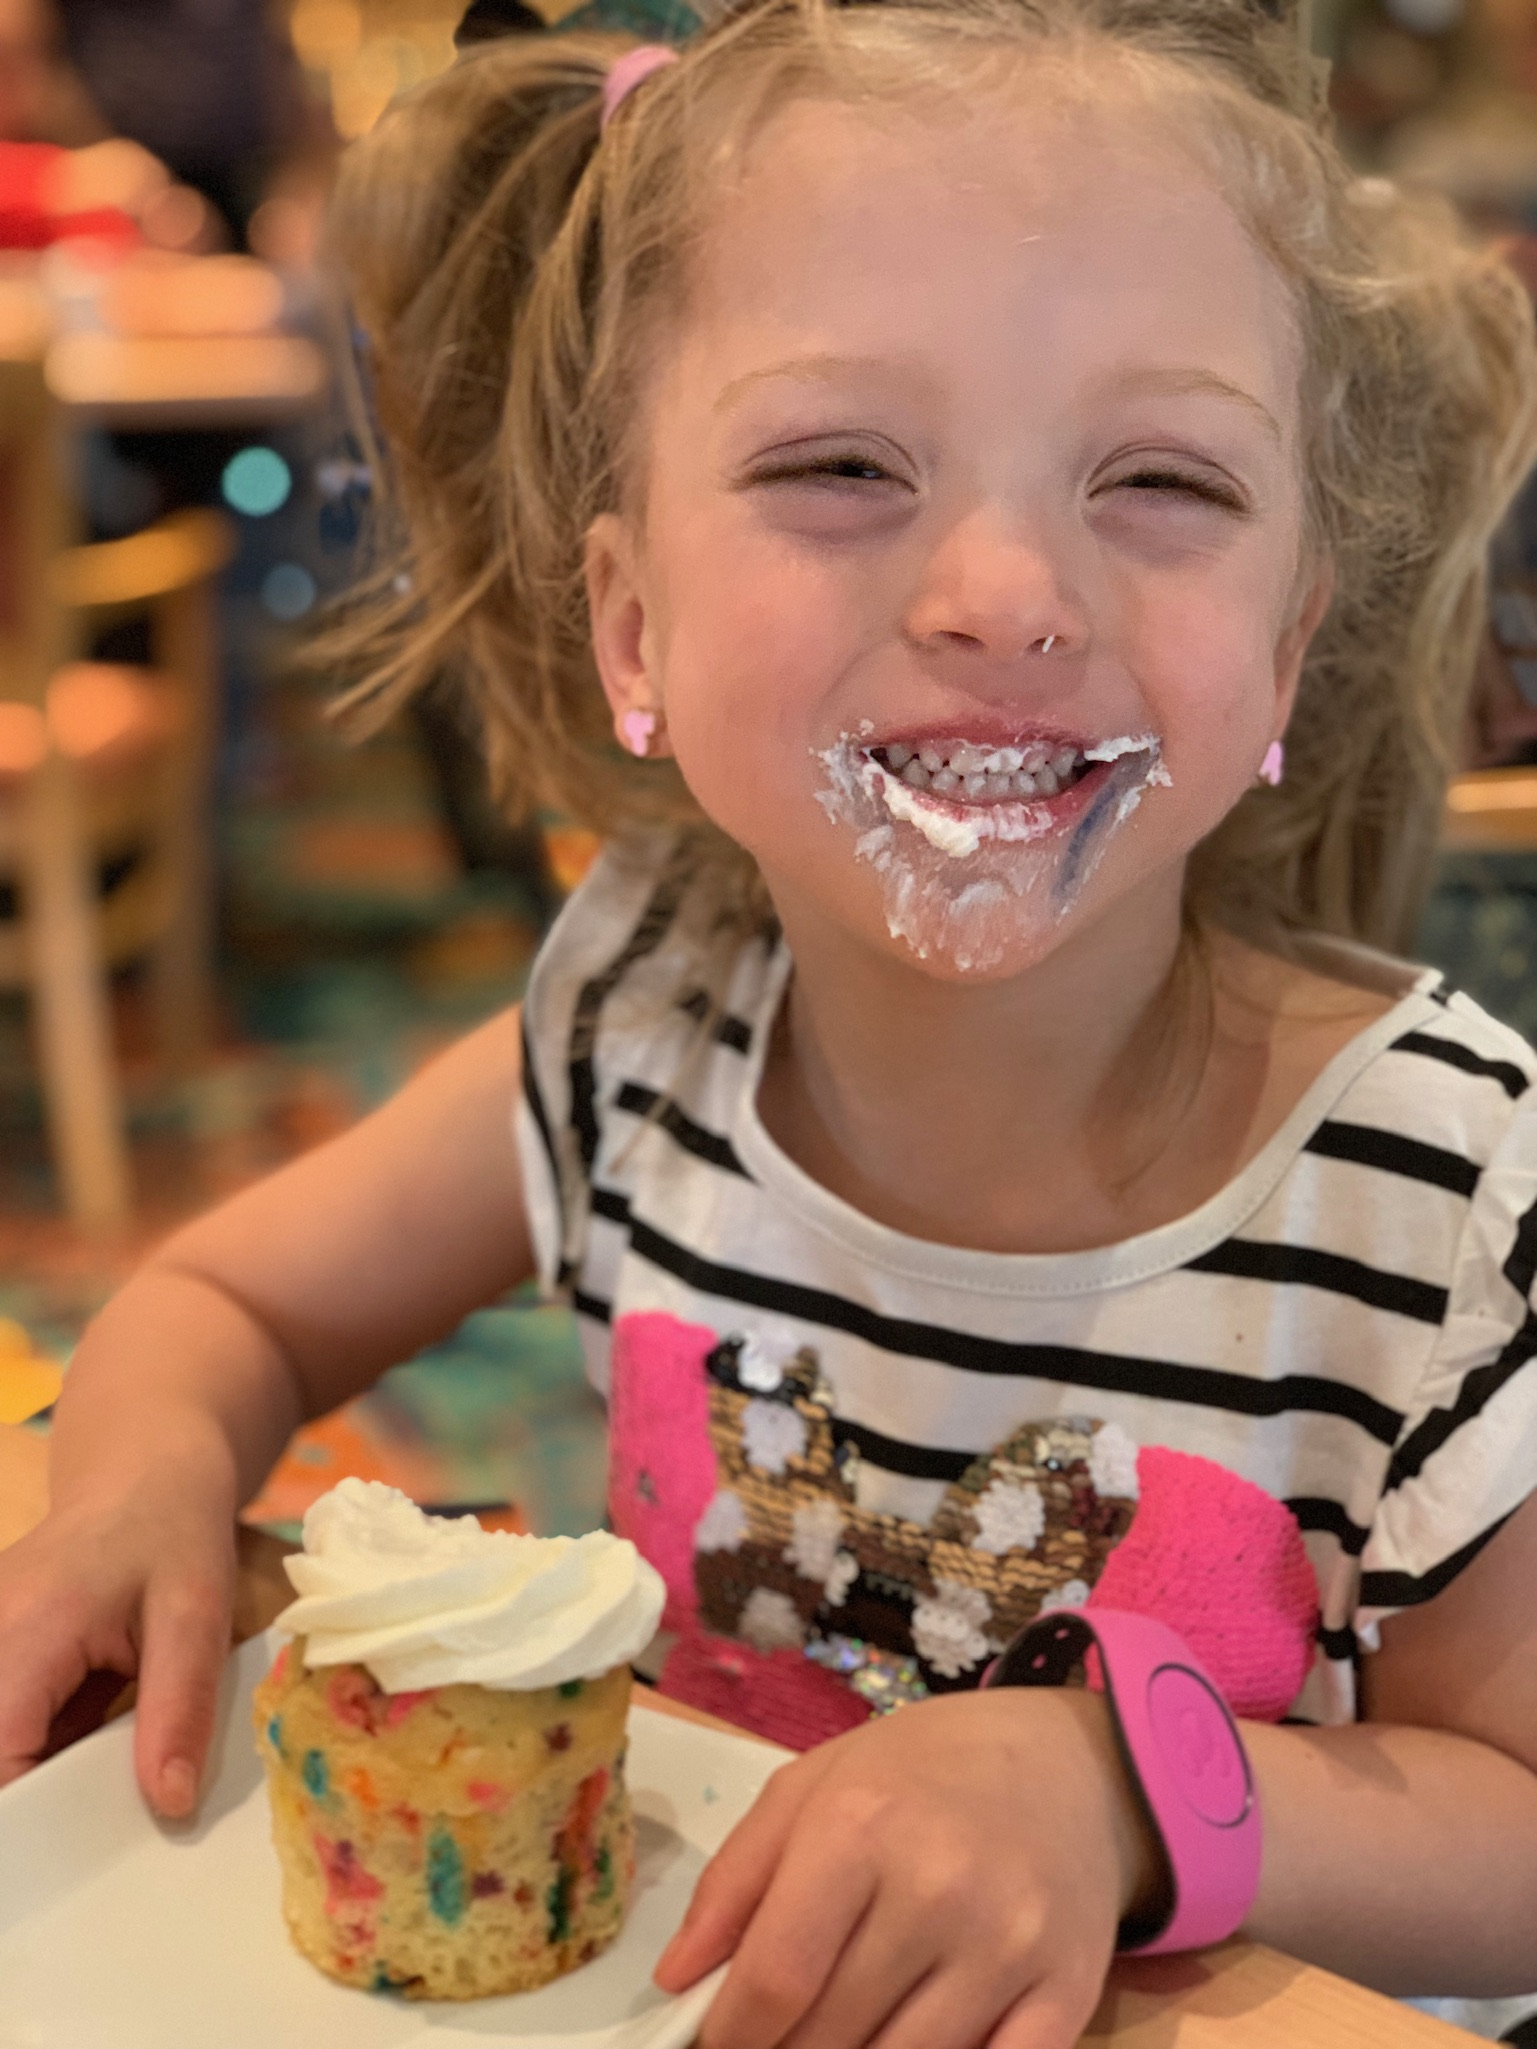 Topped off with a Birthday cupcake, because, CELEBRATION!